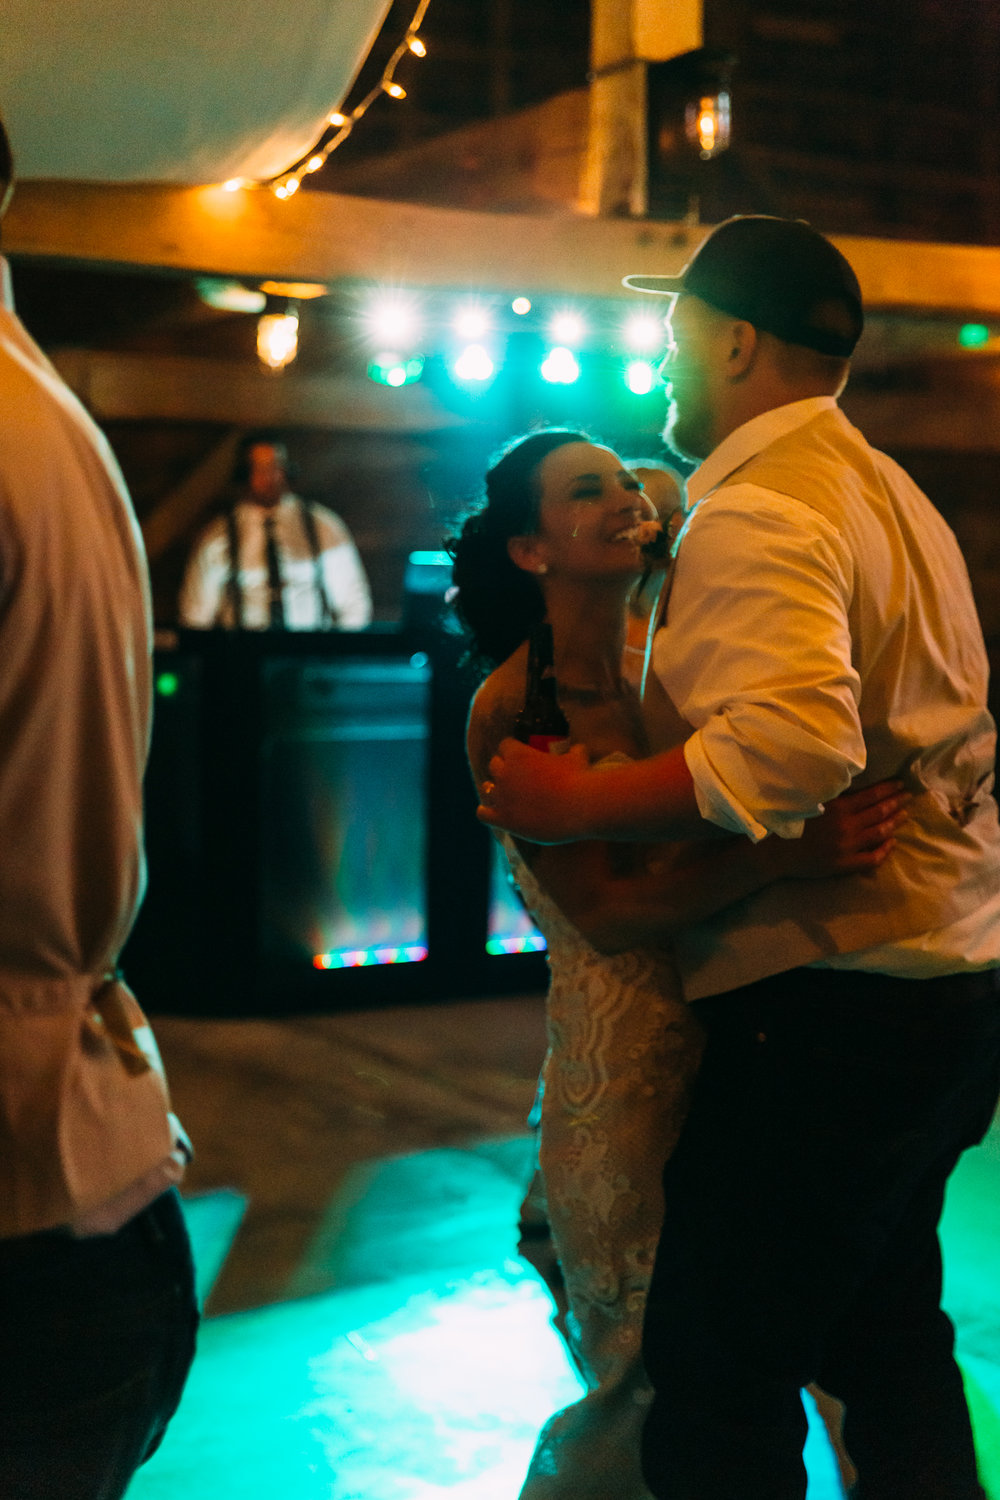 maine-couple-dancing-joyful-photography.jpg